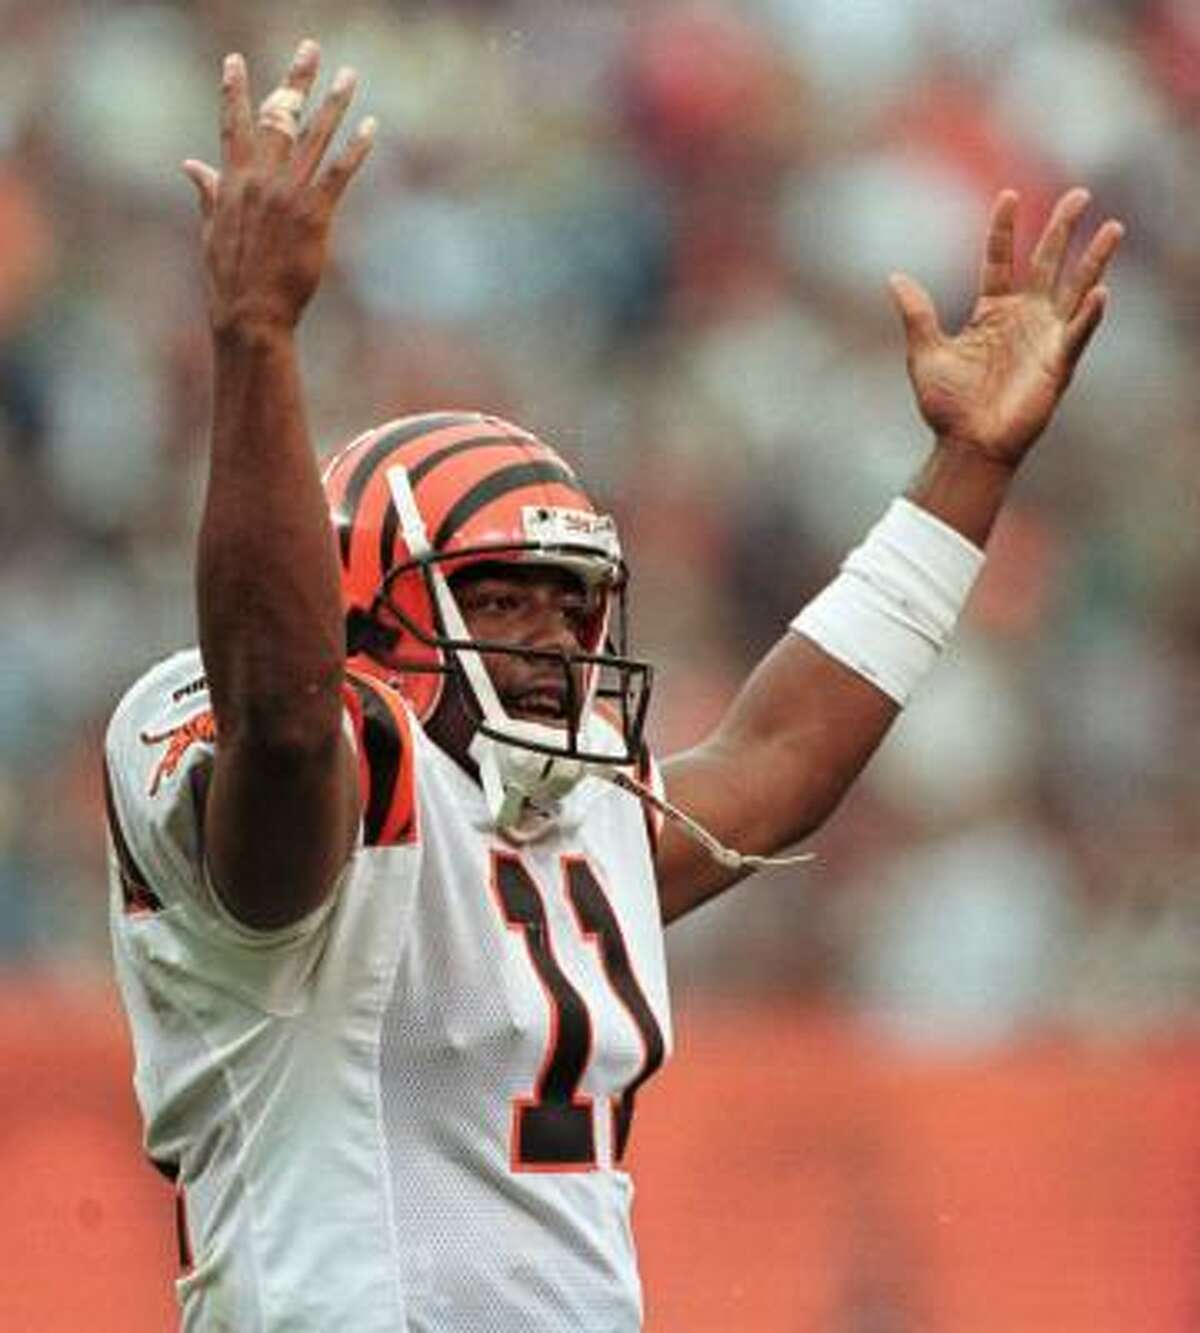 1999, Akili Smith, Cincinnati (3) In four seasons with the Bengals, he threw four TD passes and 13 INTs and was the biggest bust in team history.